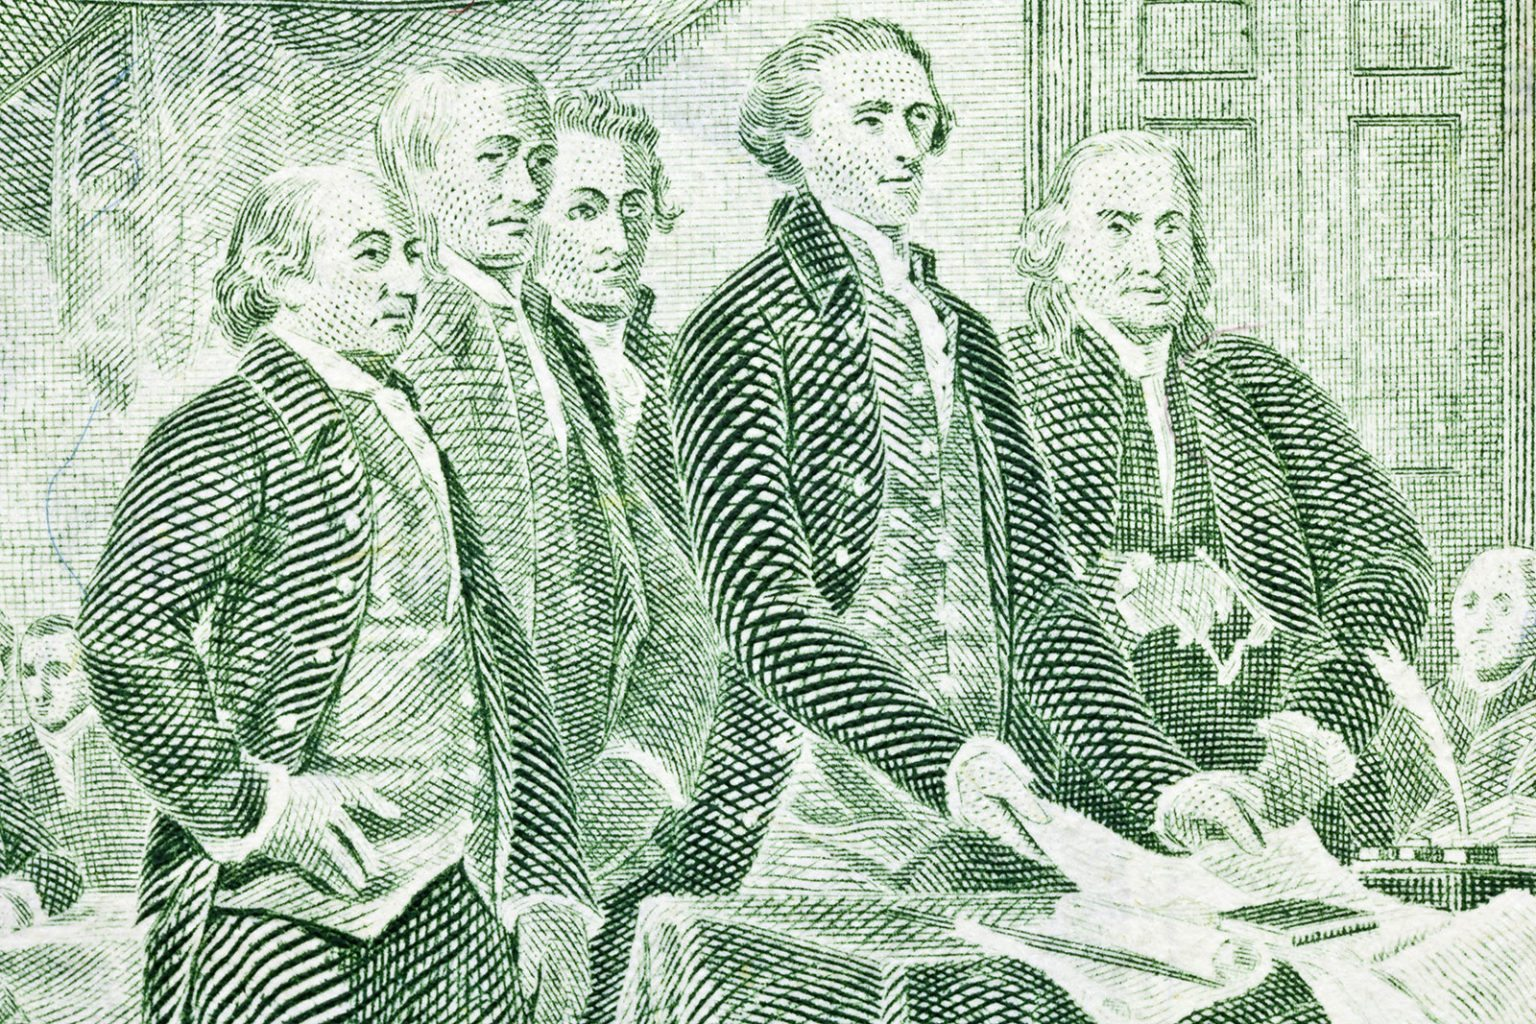 The image on the back of the U.S. two-dollar bill depicts Thomas Jefferson, Benjamin Franklin, John Adams and other colonials presenting the Declaration of Independence to Congress. (Courtesy photo)